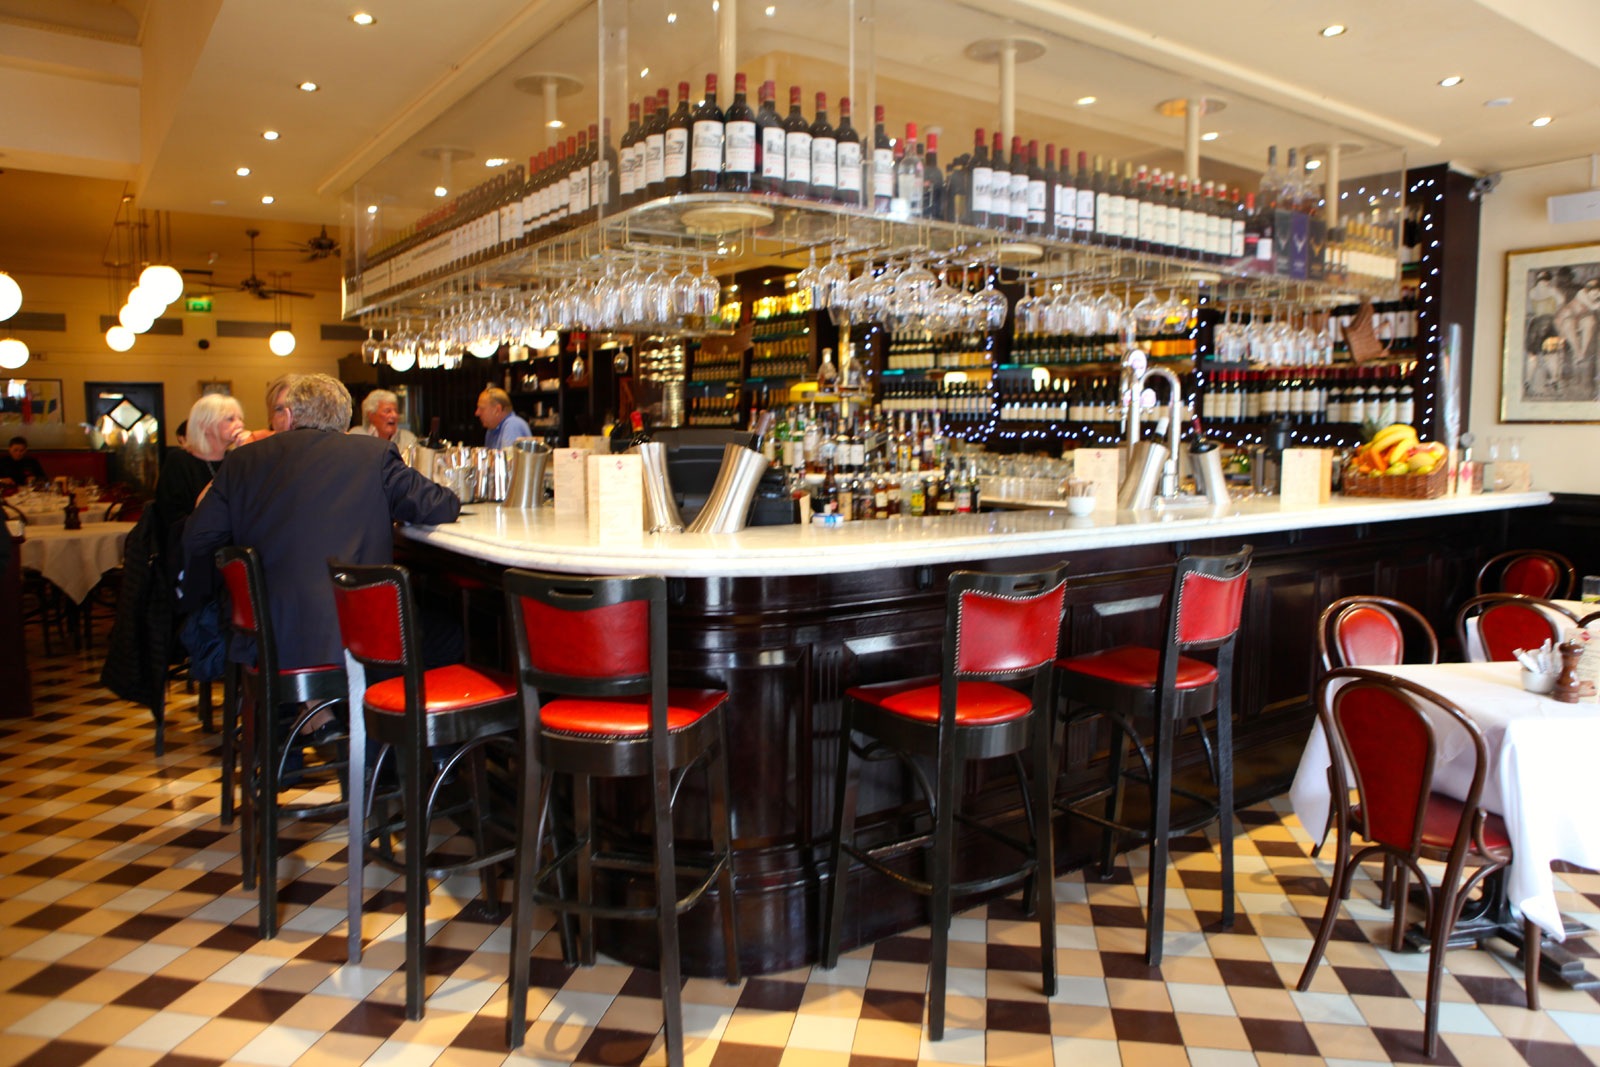 Reserve a table at La Brasserie